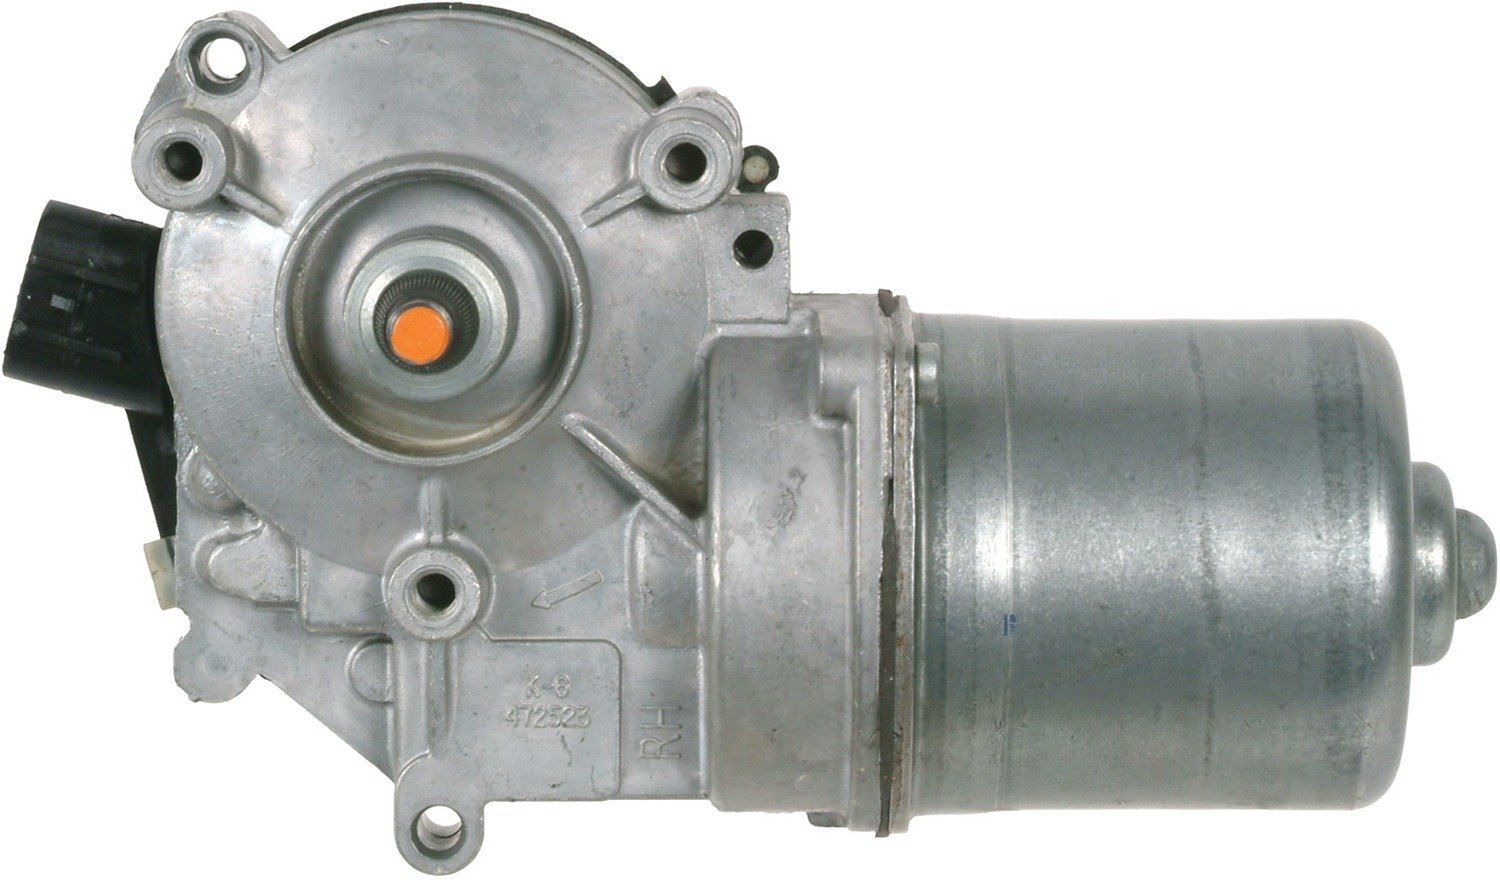 Cardone 40-1089 Remanufactured Domestic Wiper Motor by A1 Cardone